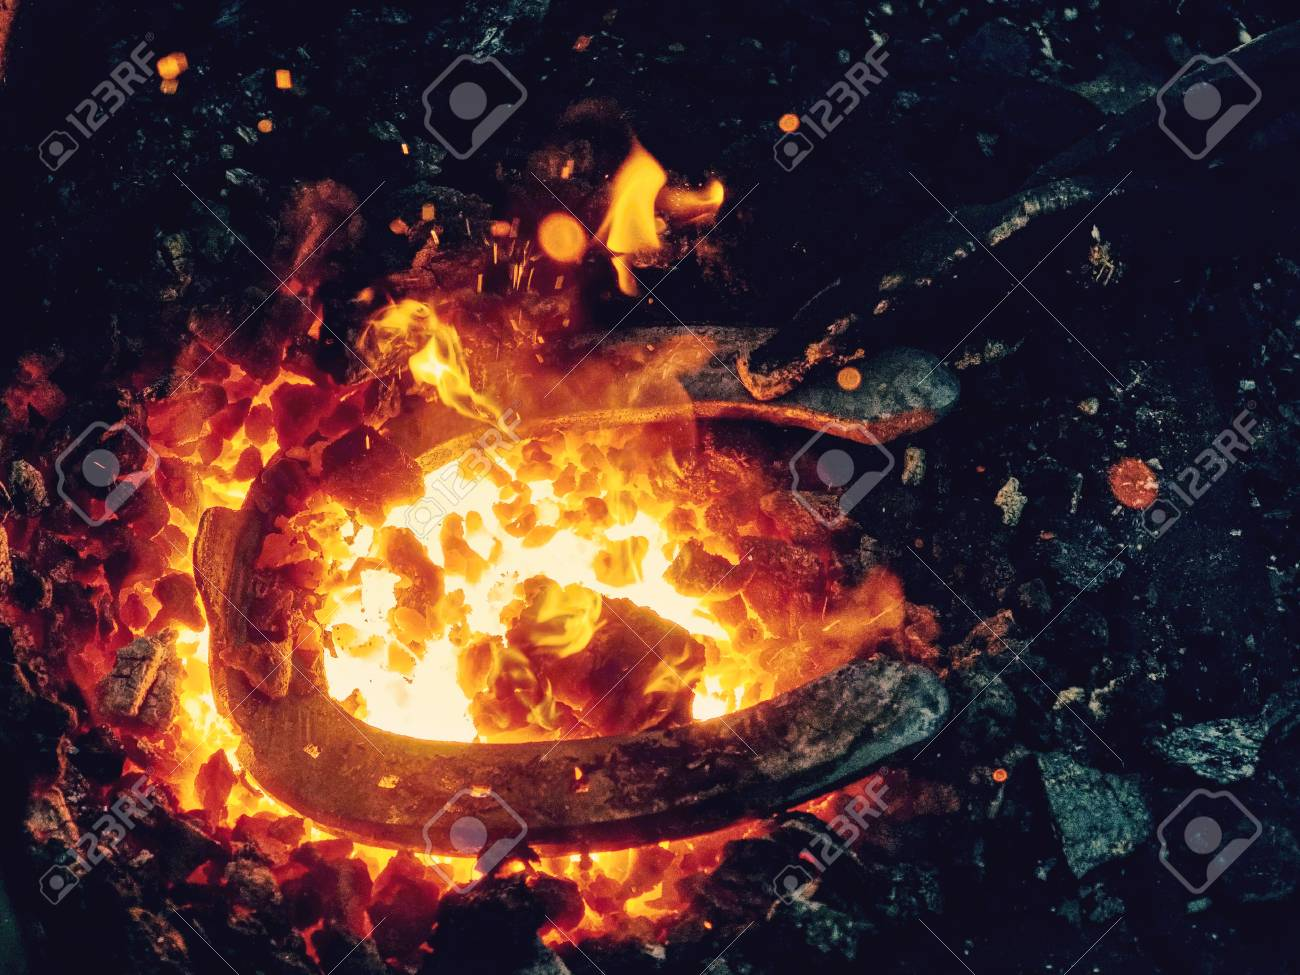 Red fire blazes inside of coal forge. Blacksmith traditional works with hot metal to form horse shoe from semiproduct - 116354876